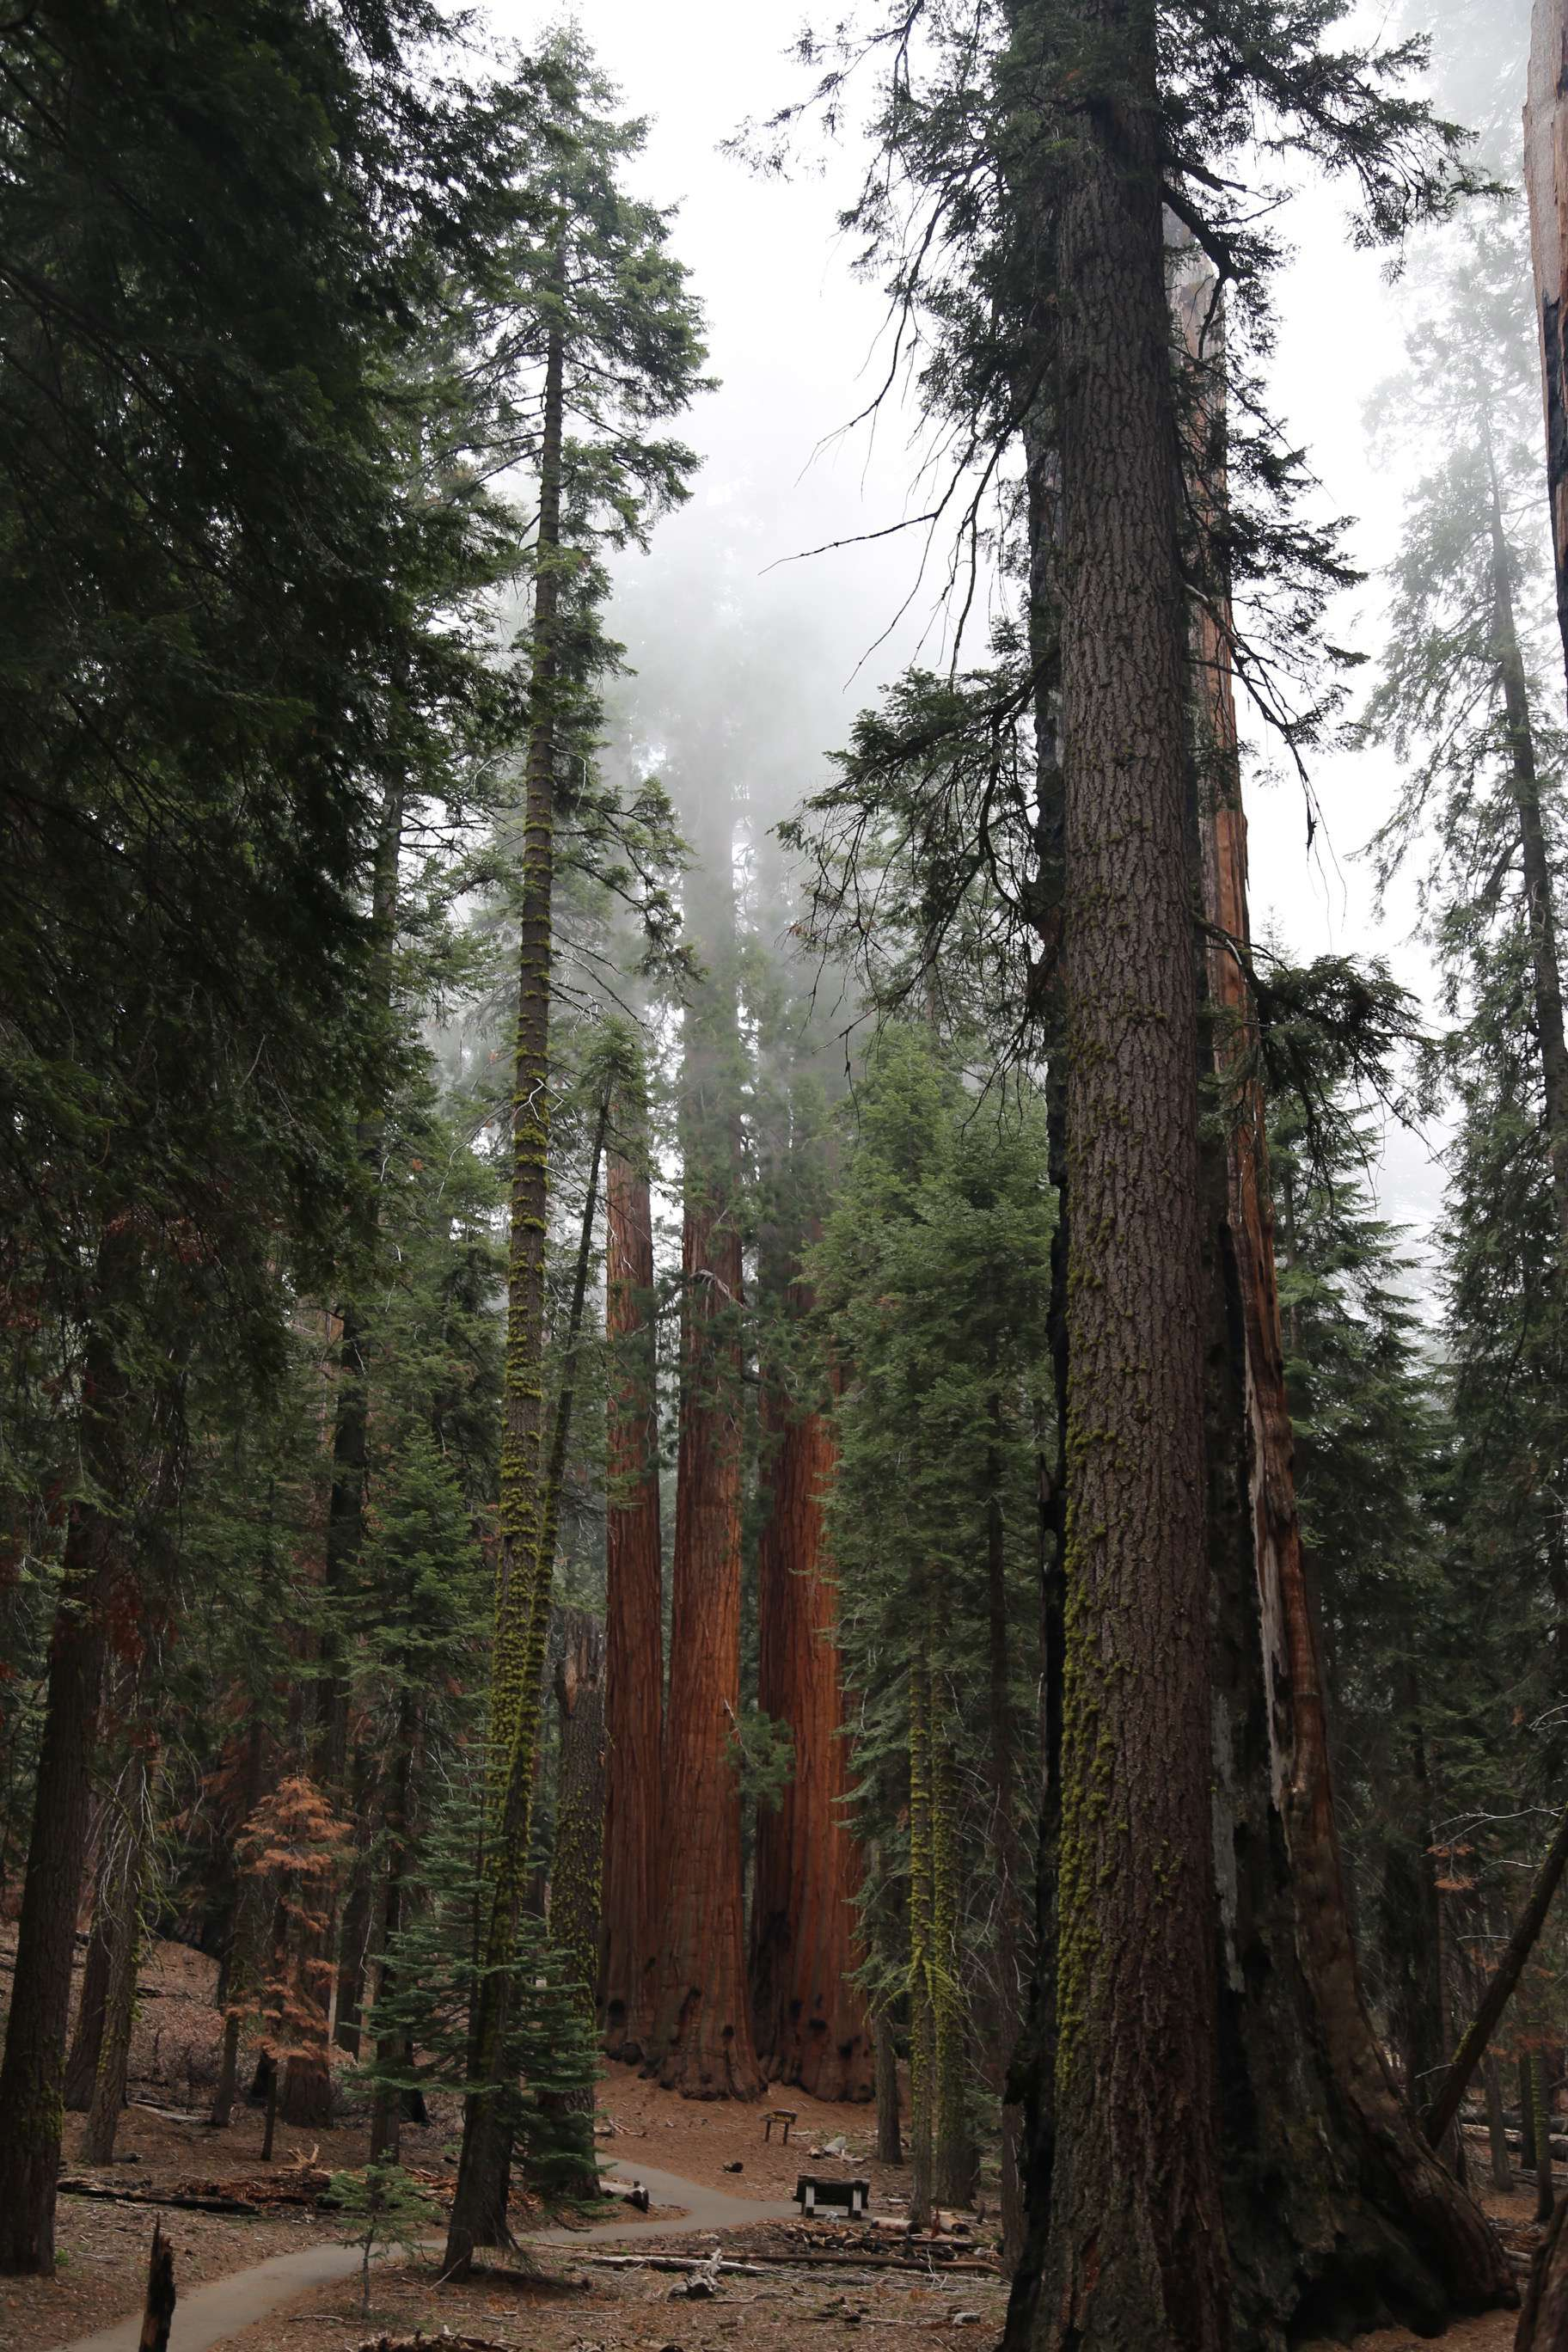 An afternoon mist rolls in, adding some measure to the cycle of rain and moisture that sustains the giant sequoias. This group has been named The House, after the other body in the U.S. Congress.